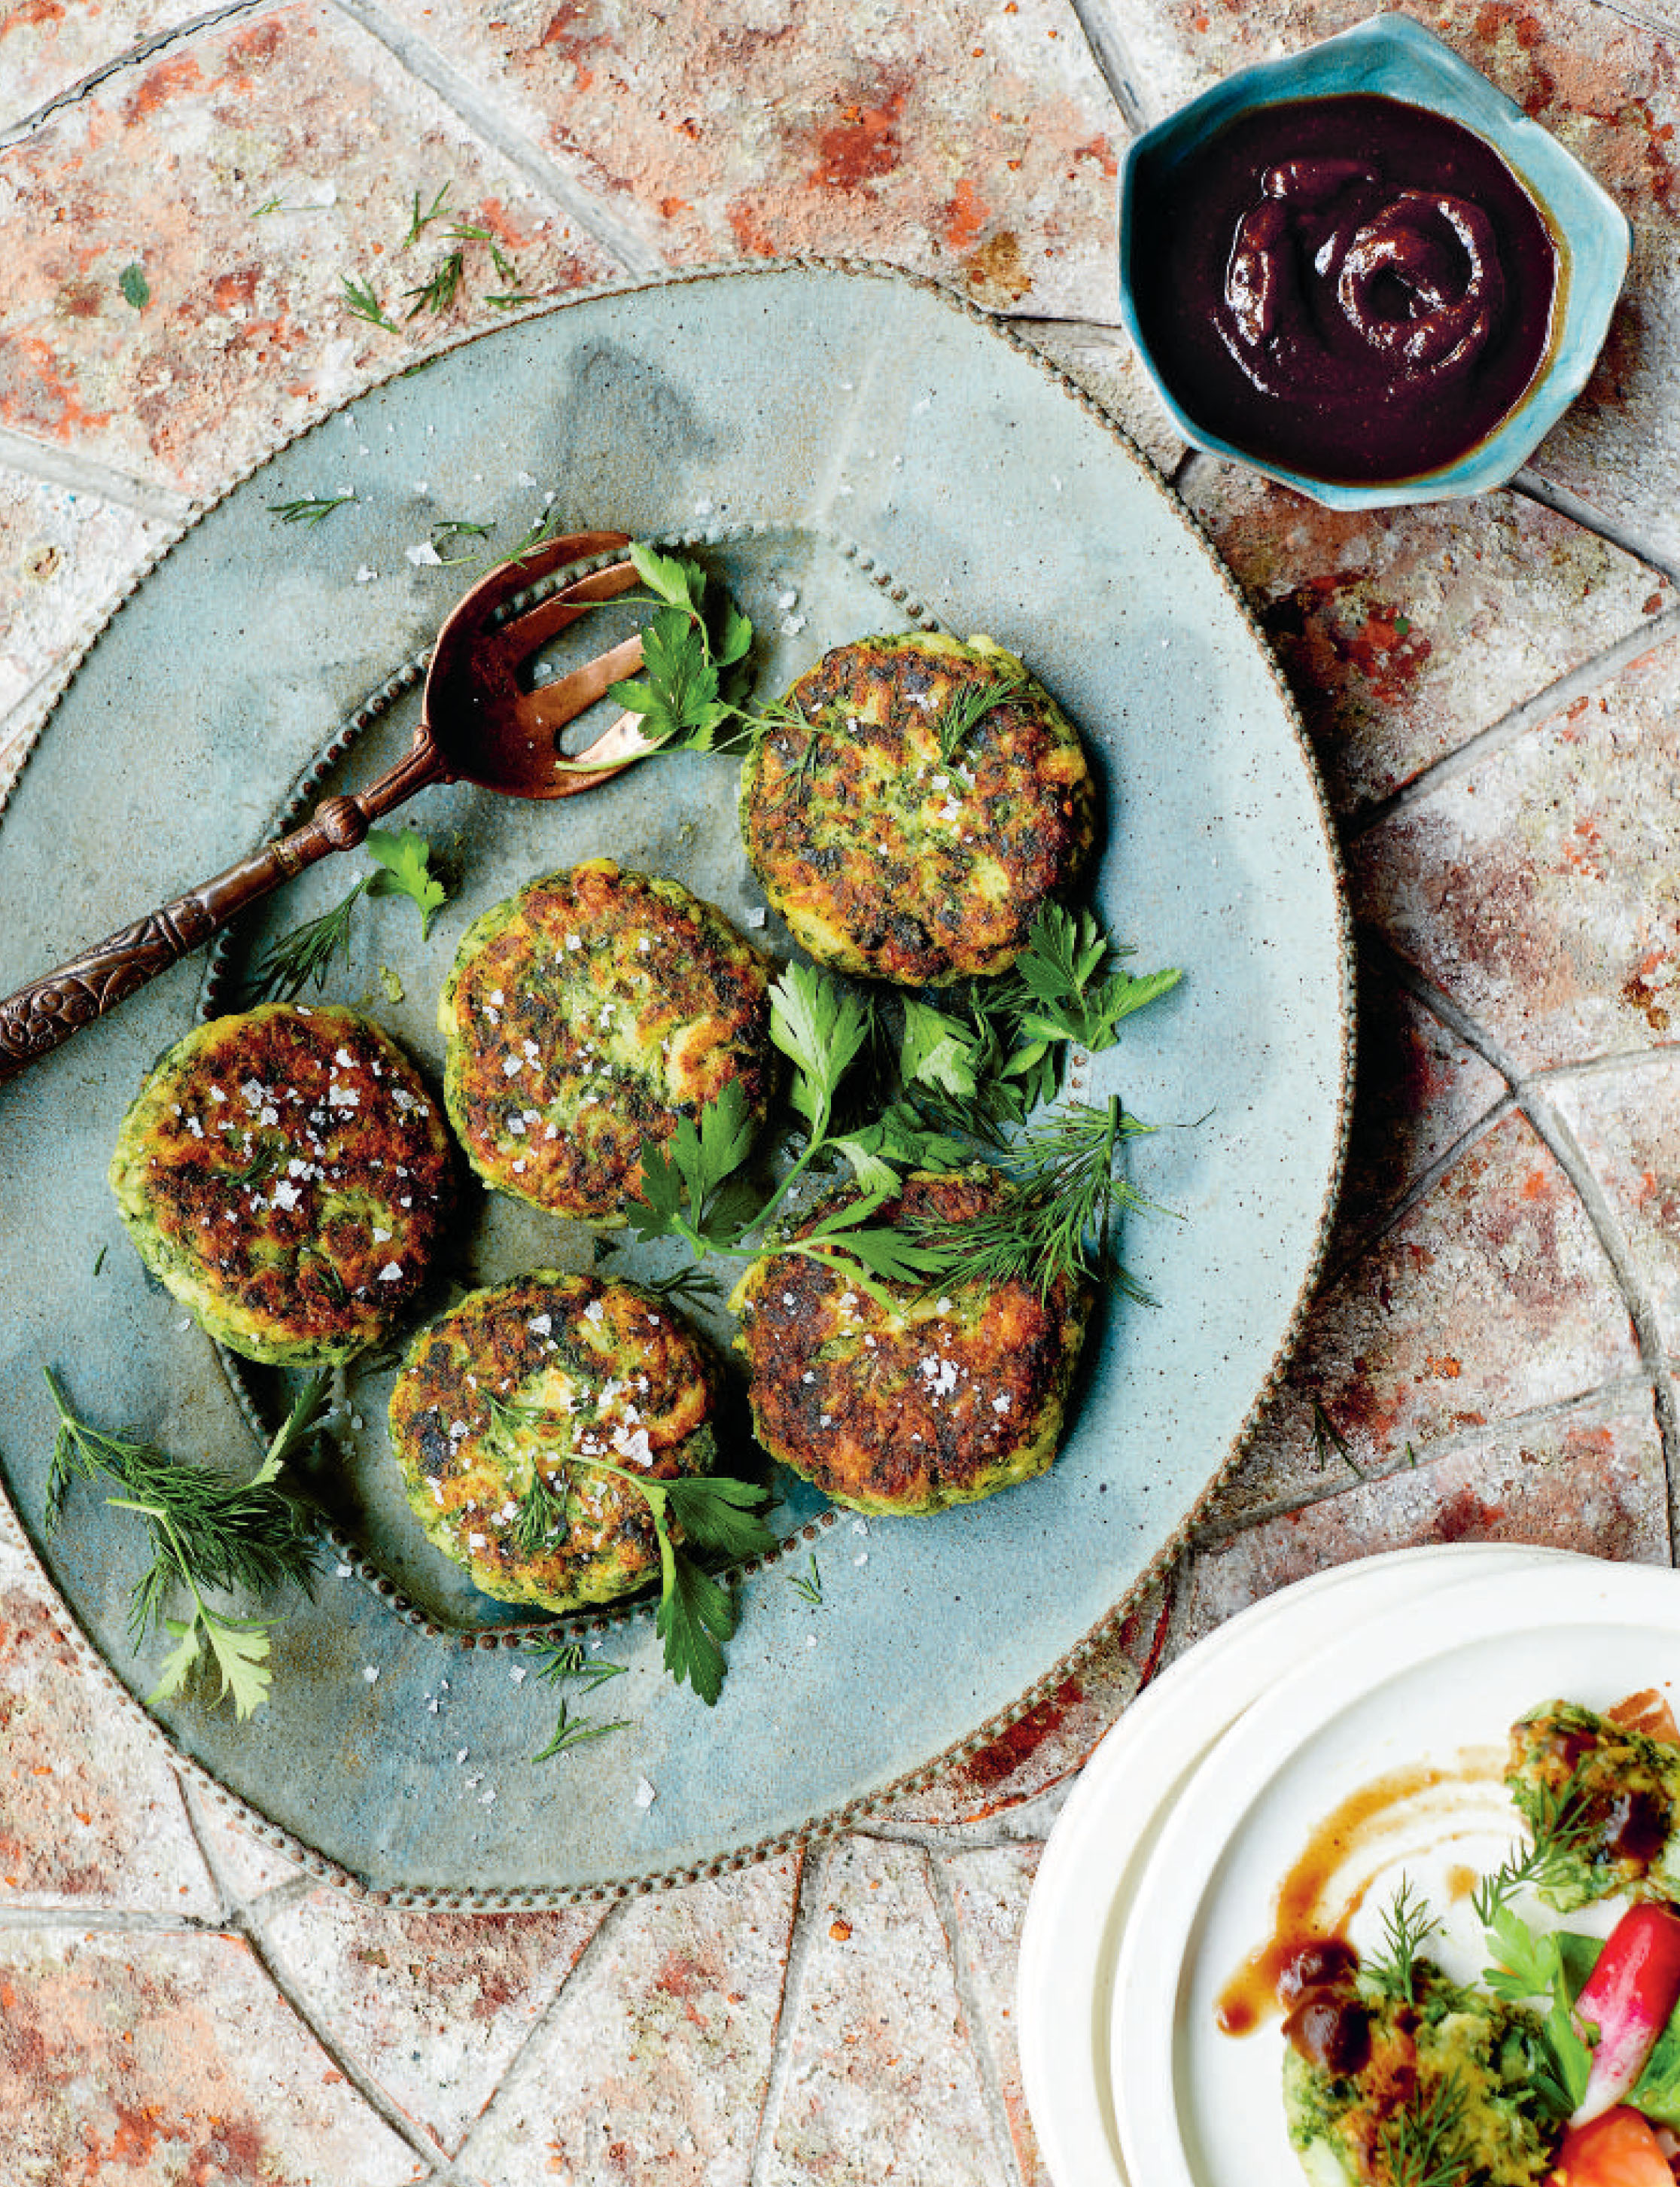 Bandari fishcakes with a tamarind and date sauce